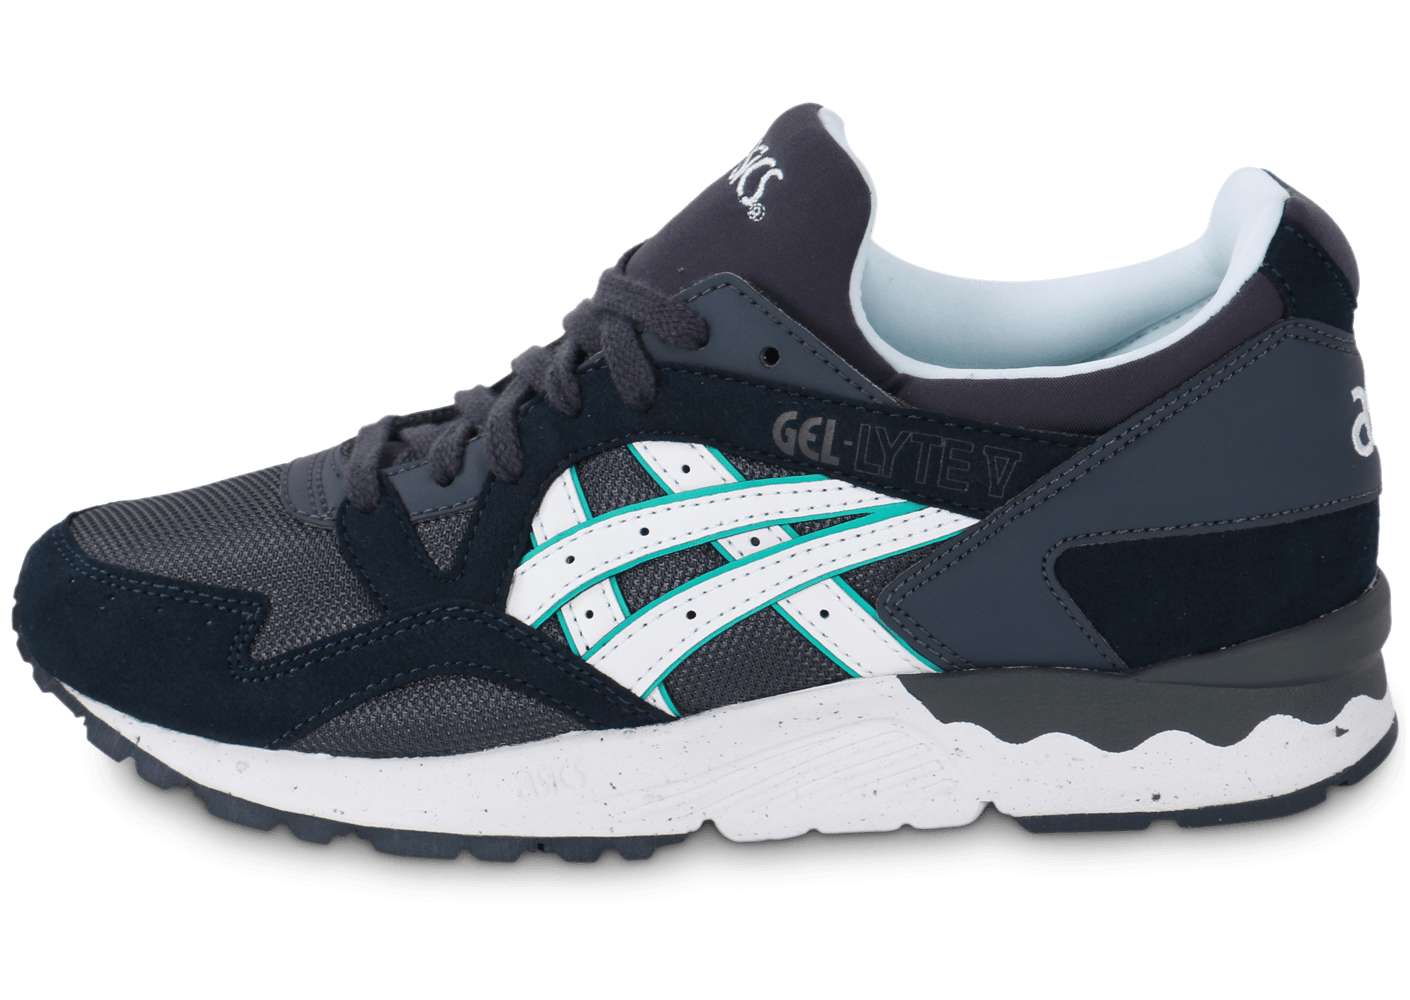 asics gel lyte v f grise chaussures chaussures chausport. Black Bedroom Furniture Sets. Home Design Ideas